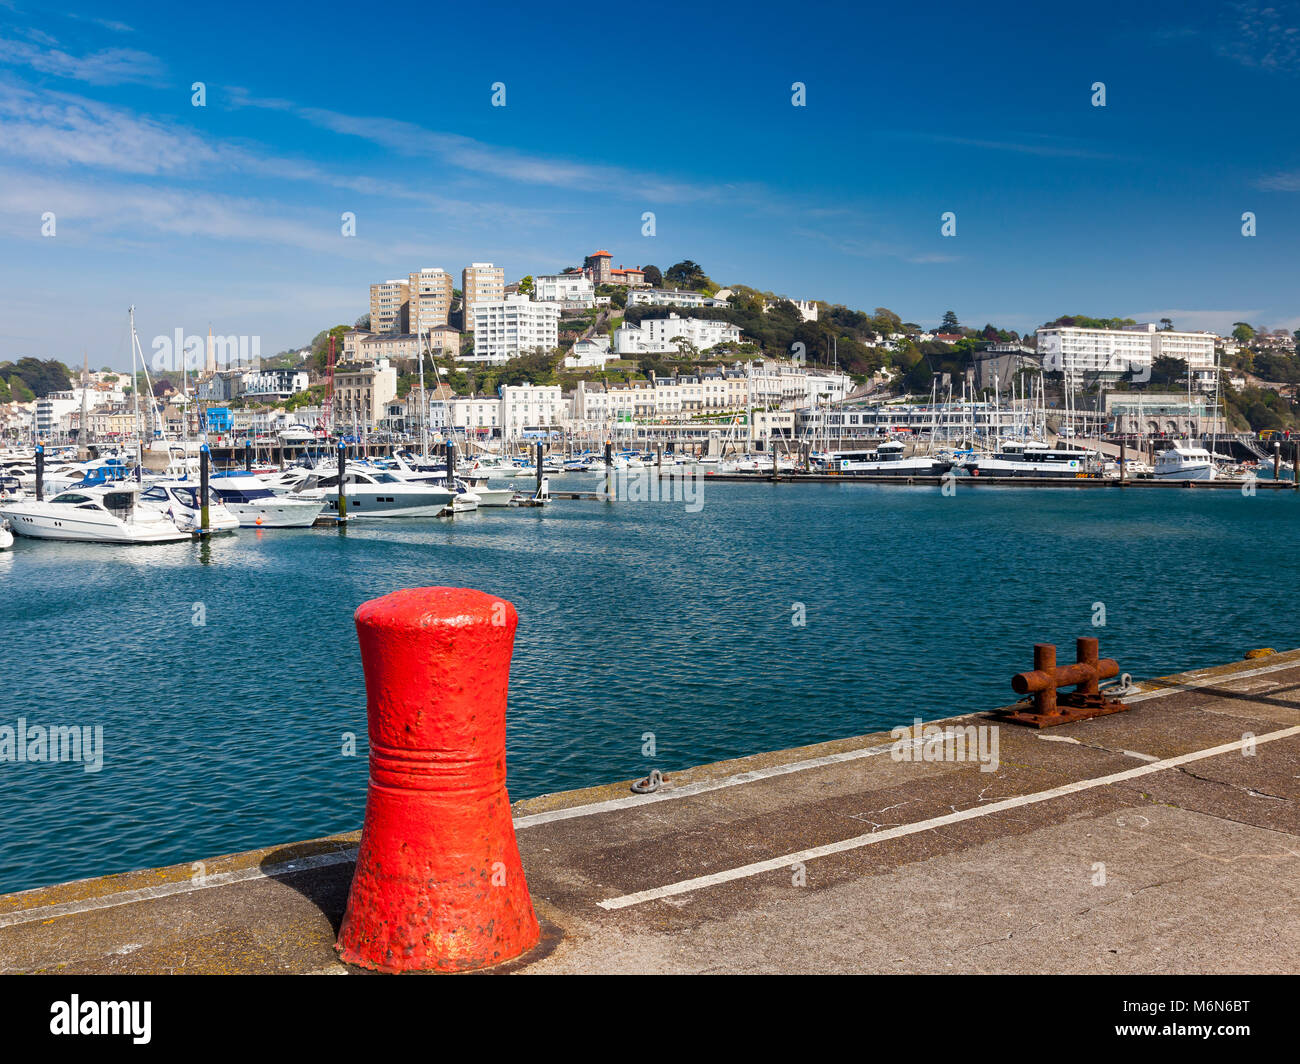 TORQUAY, UNITED KINGDOM - 7th of May 2016 - Summer at Torquay Harbour & Marina Devon England UK a popular tourist - Stock Image